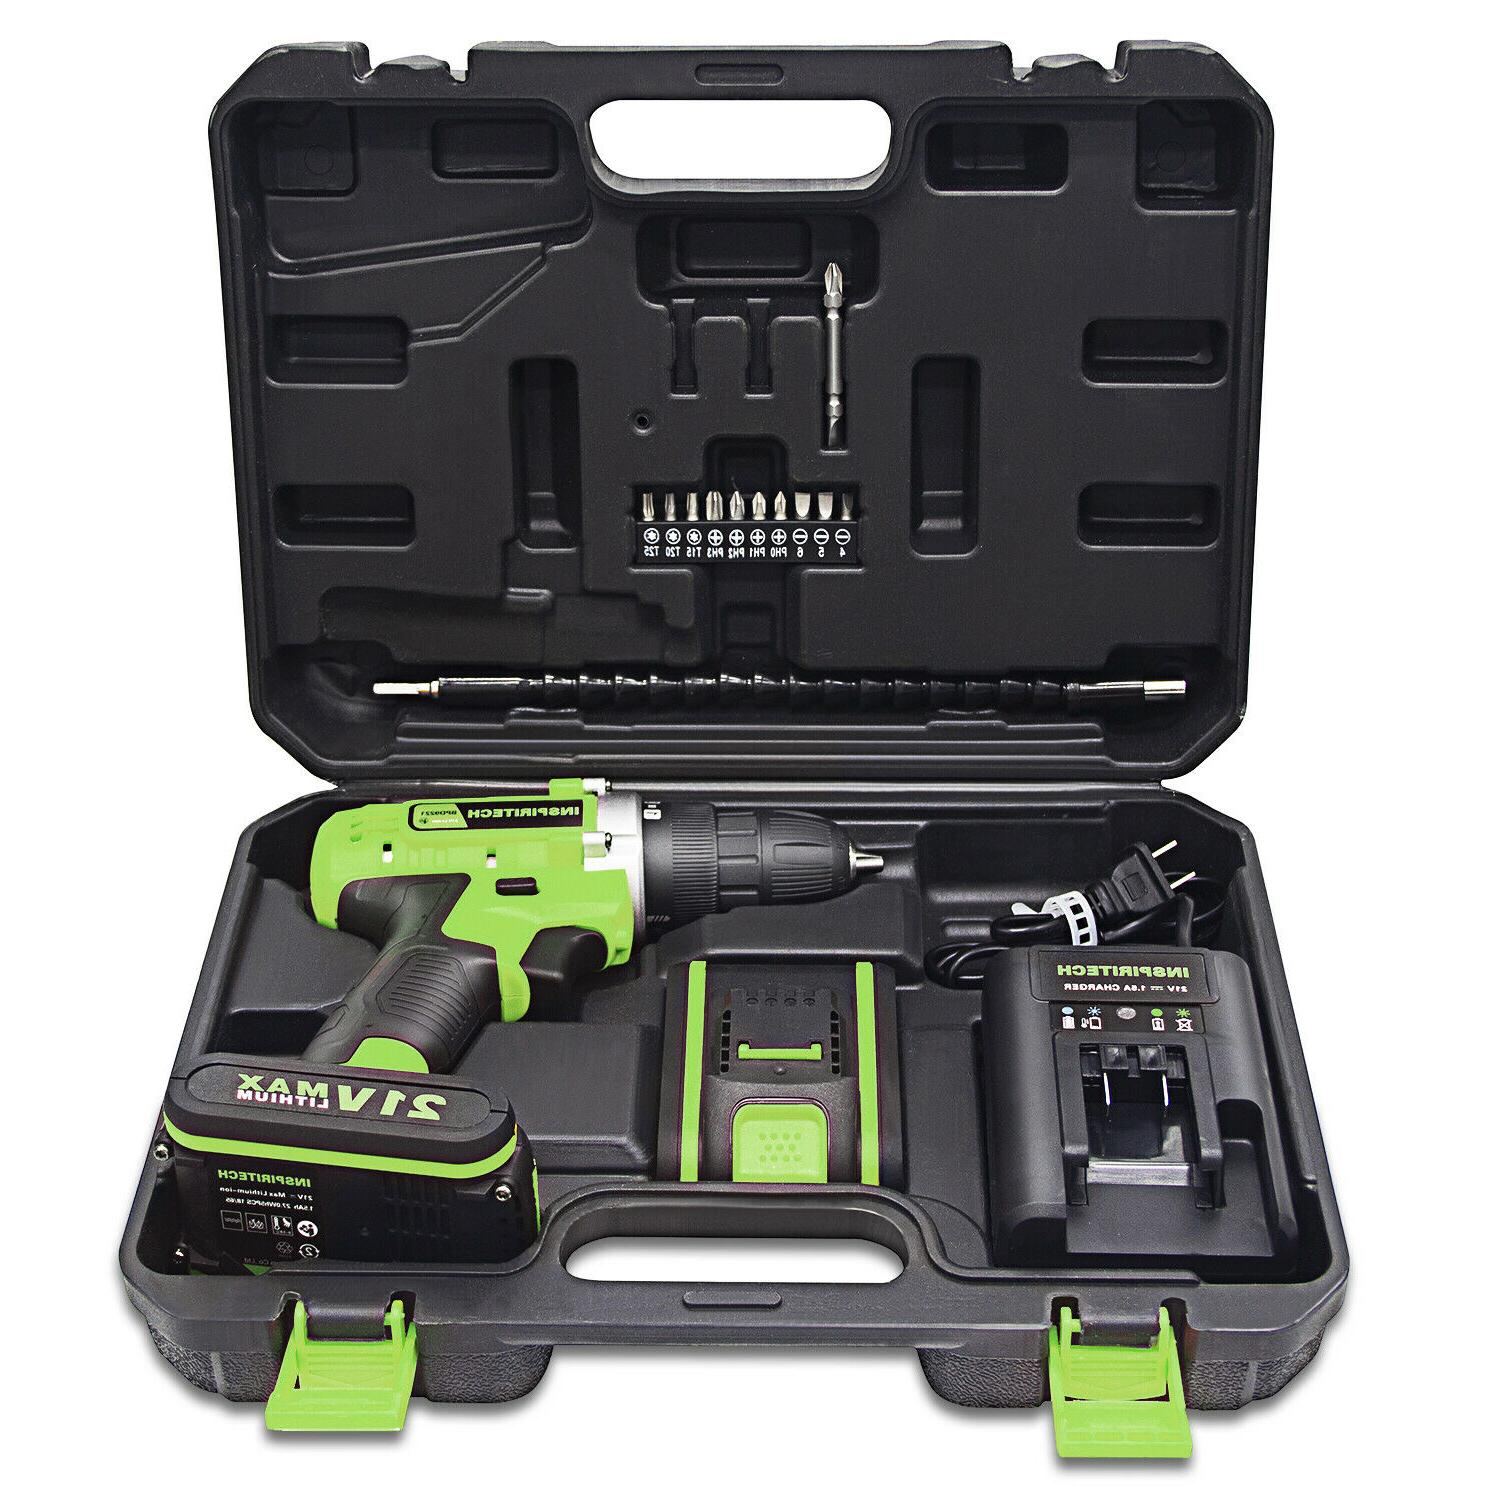 21-Volt Electric Drill/Driver with Bits & Batteries